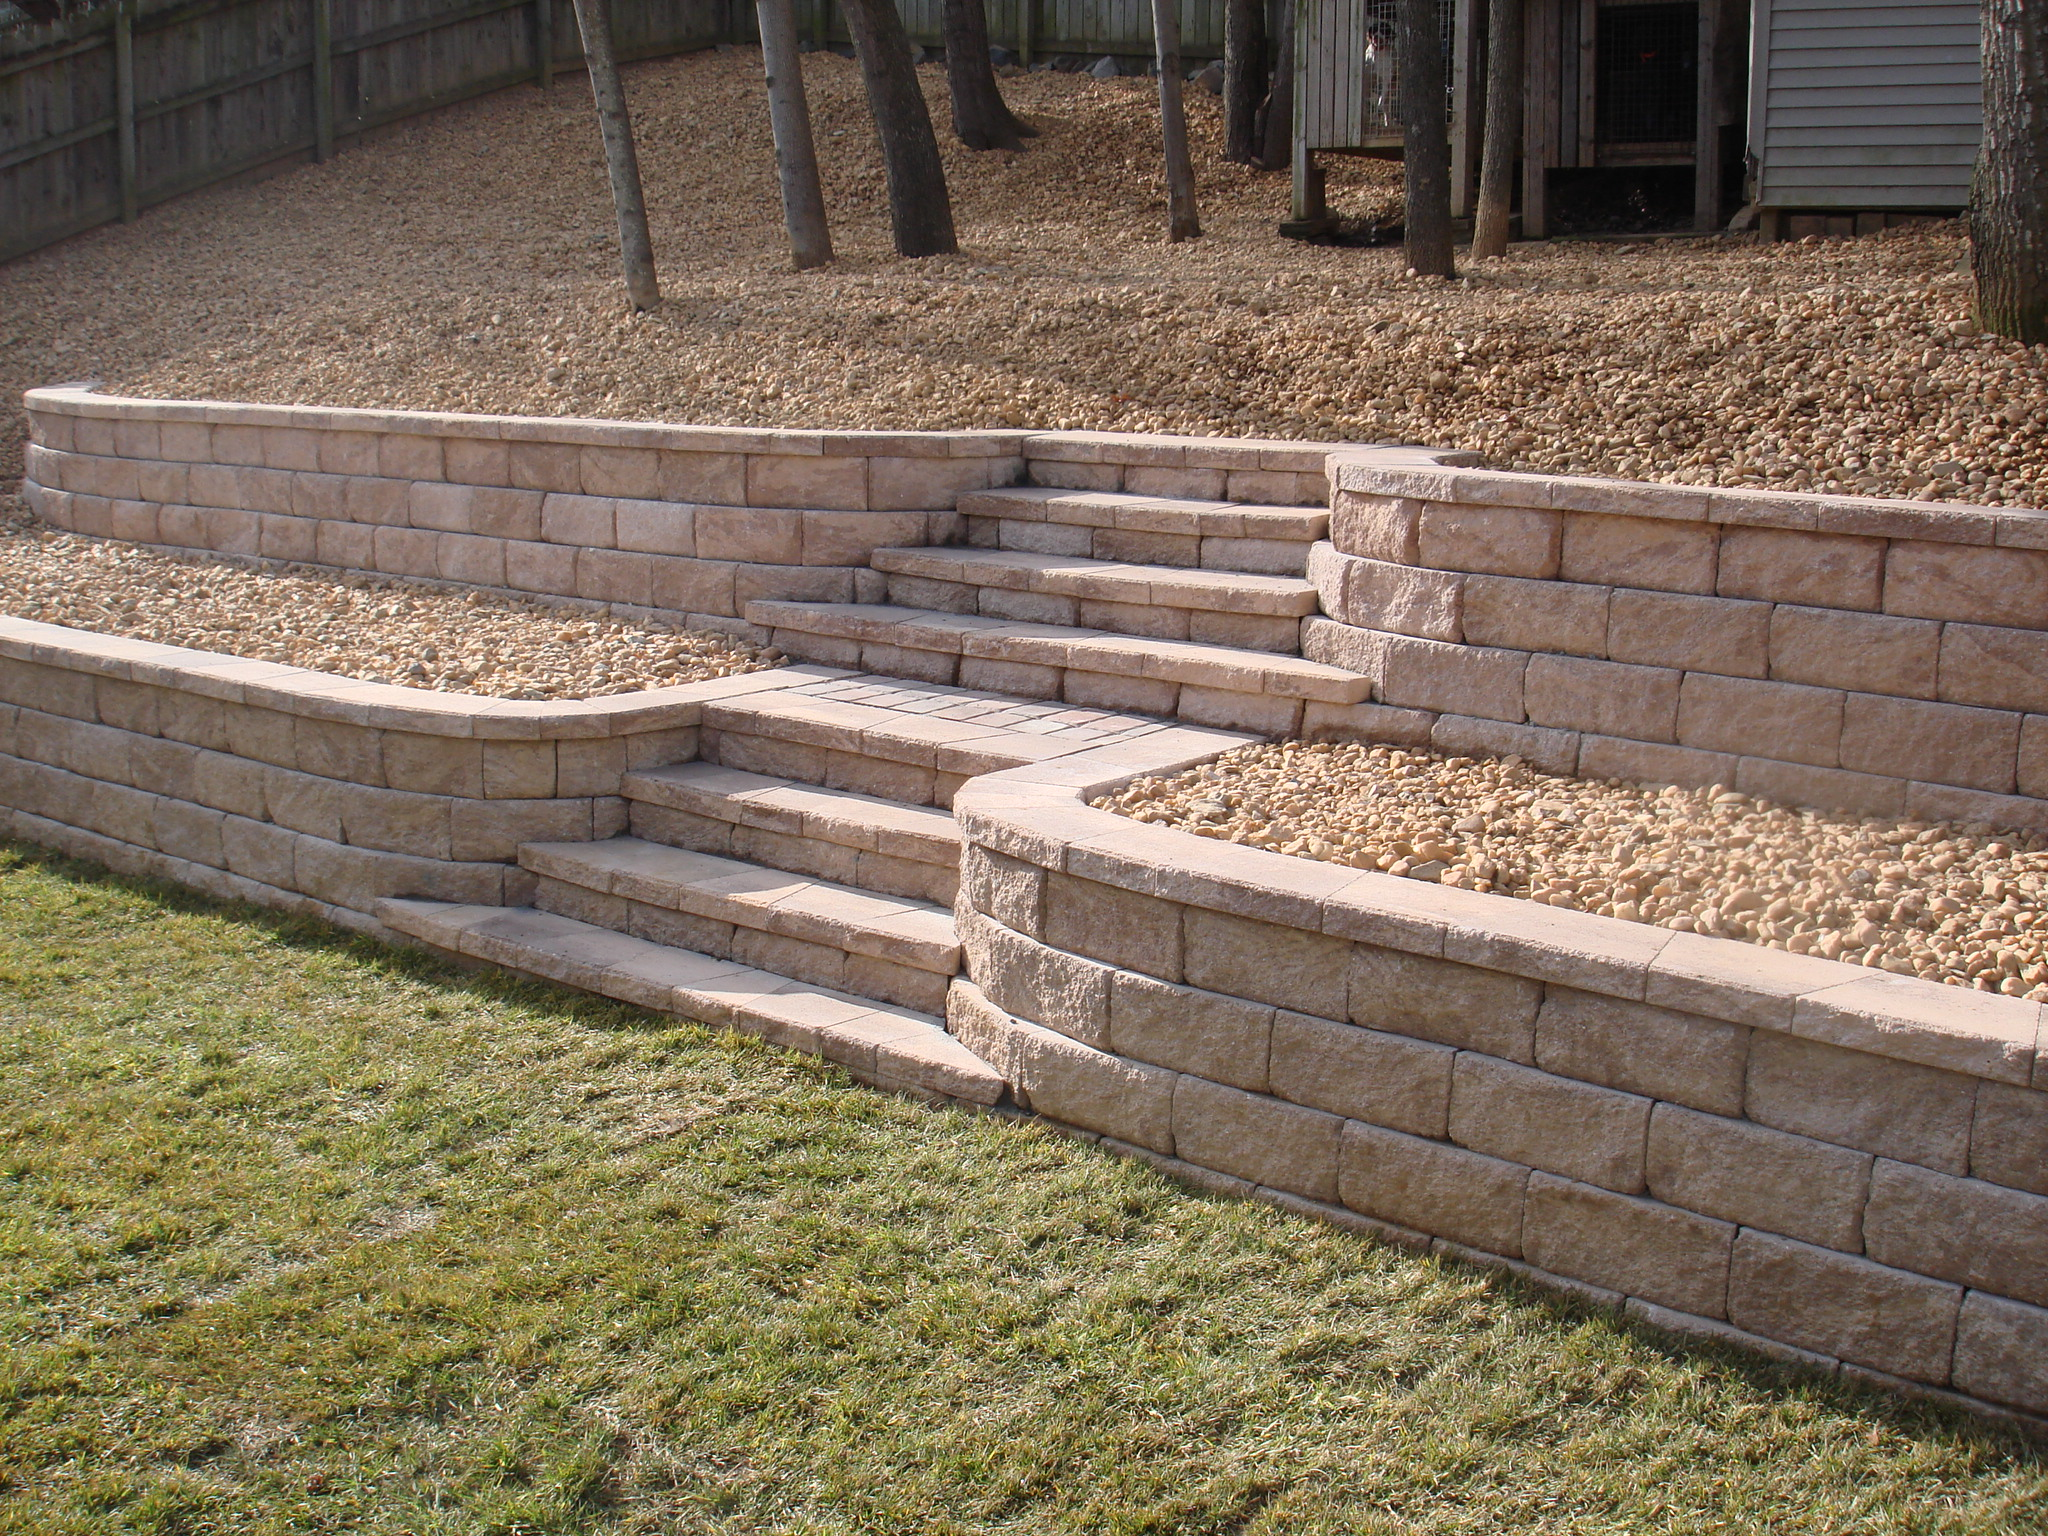 Landscape Blocks Of Retaining Wall With Stone Steps Fredericksburg Virginia